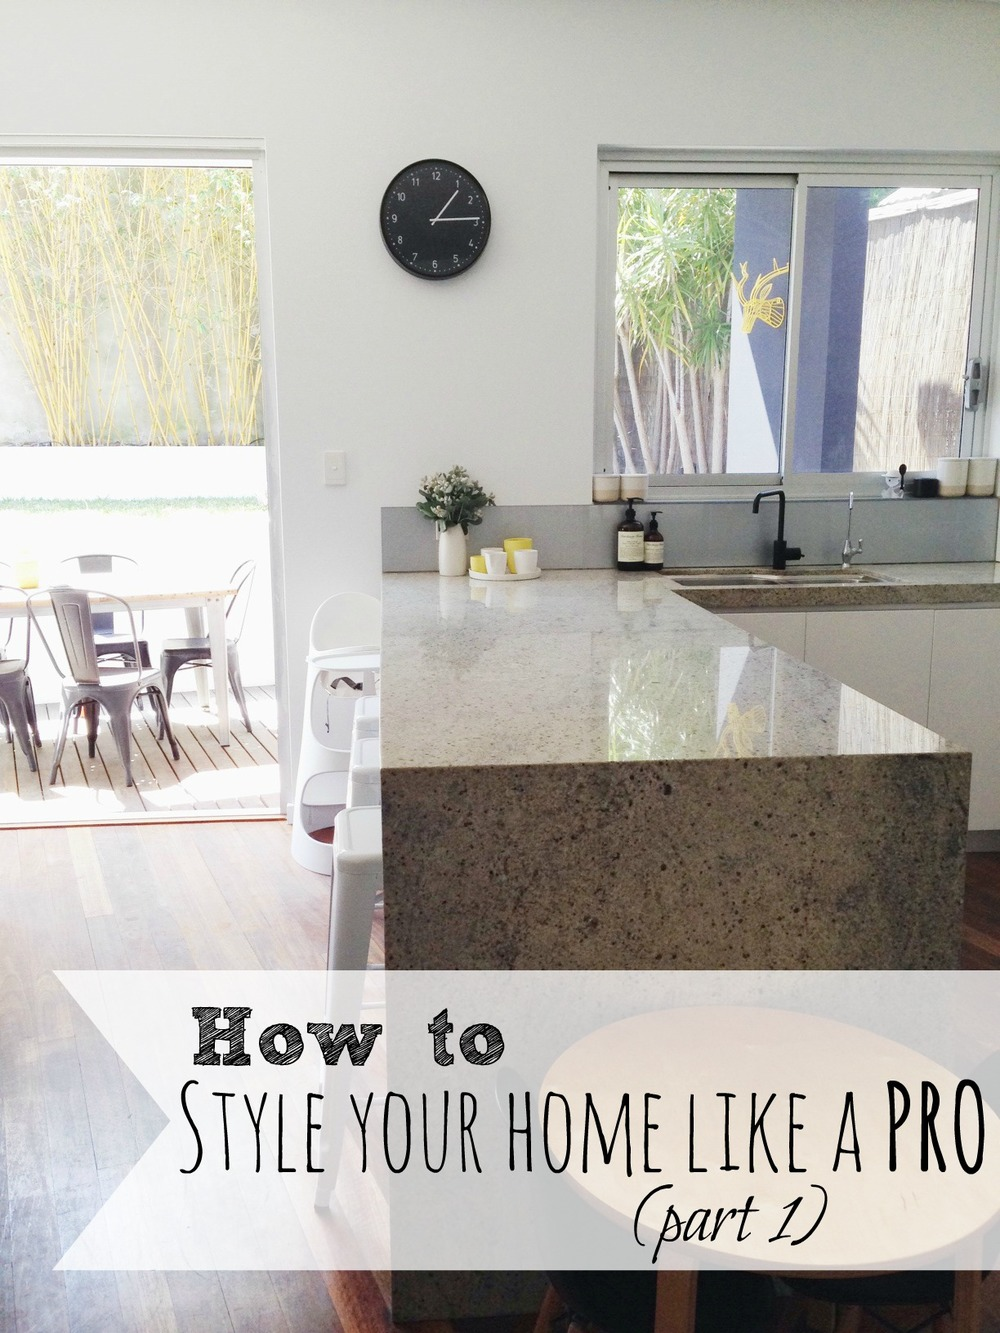 How to style your home like a pro (Part 1) — The Little Design Corner